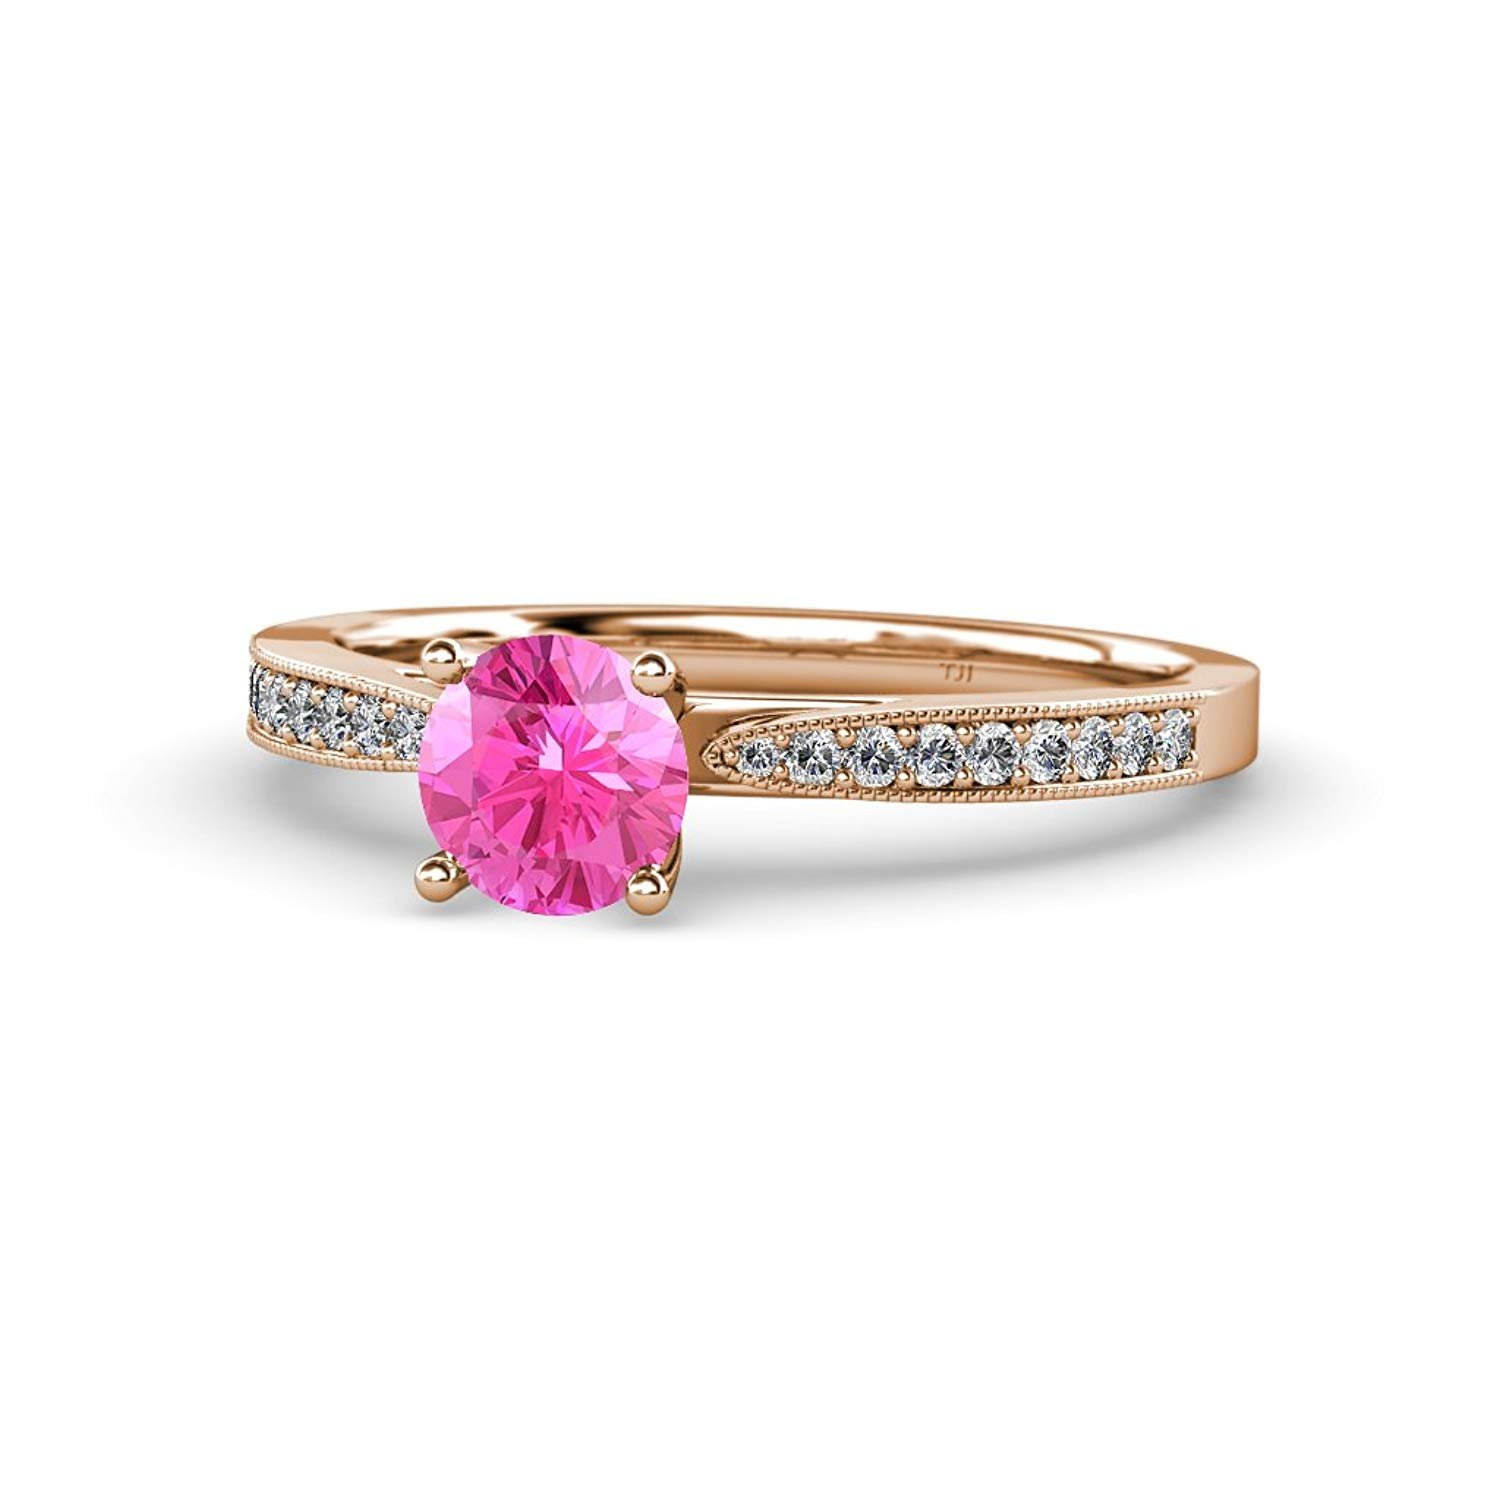 Pink Sapphire and Diamond Engagement Ring with Milgrain Work 1.13 cttw in 14K Rose Gold.size 8.5 by TriJewels